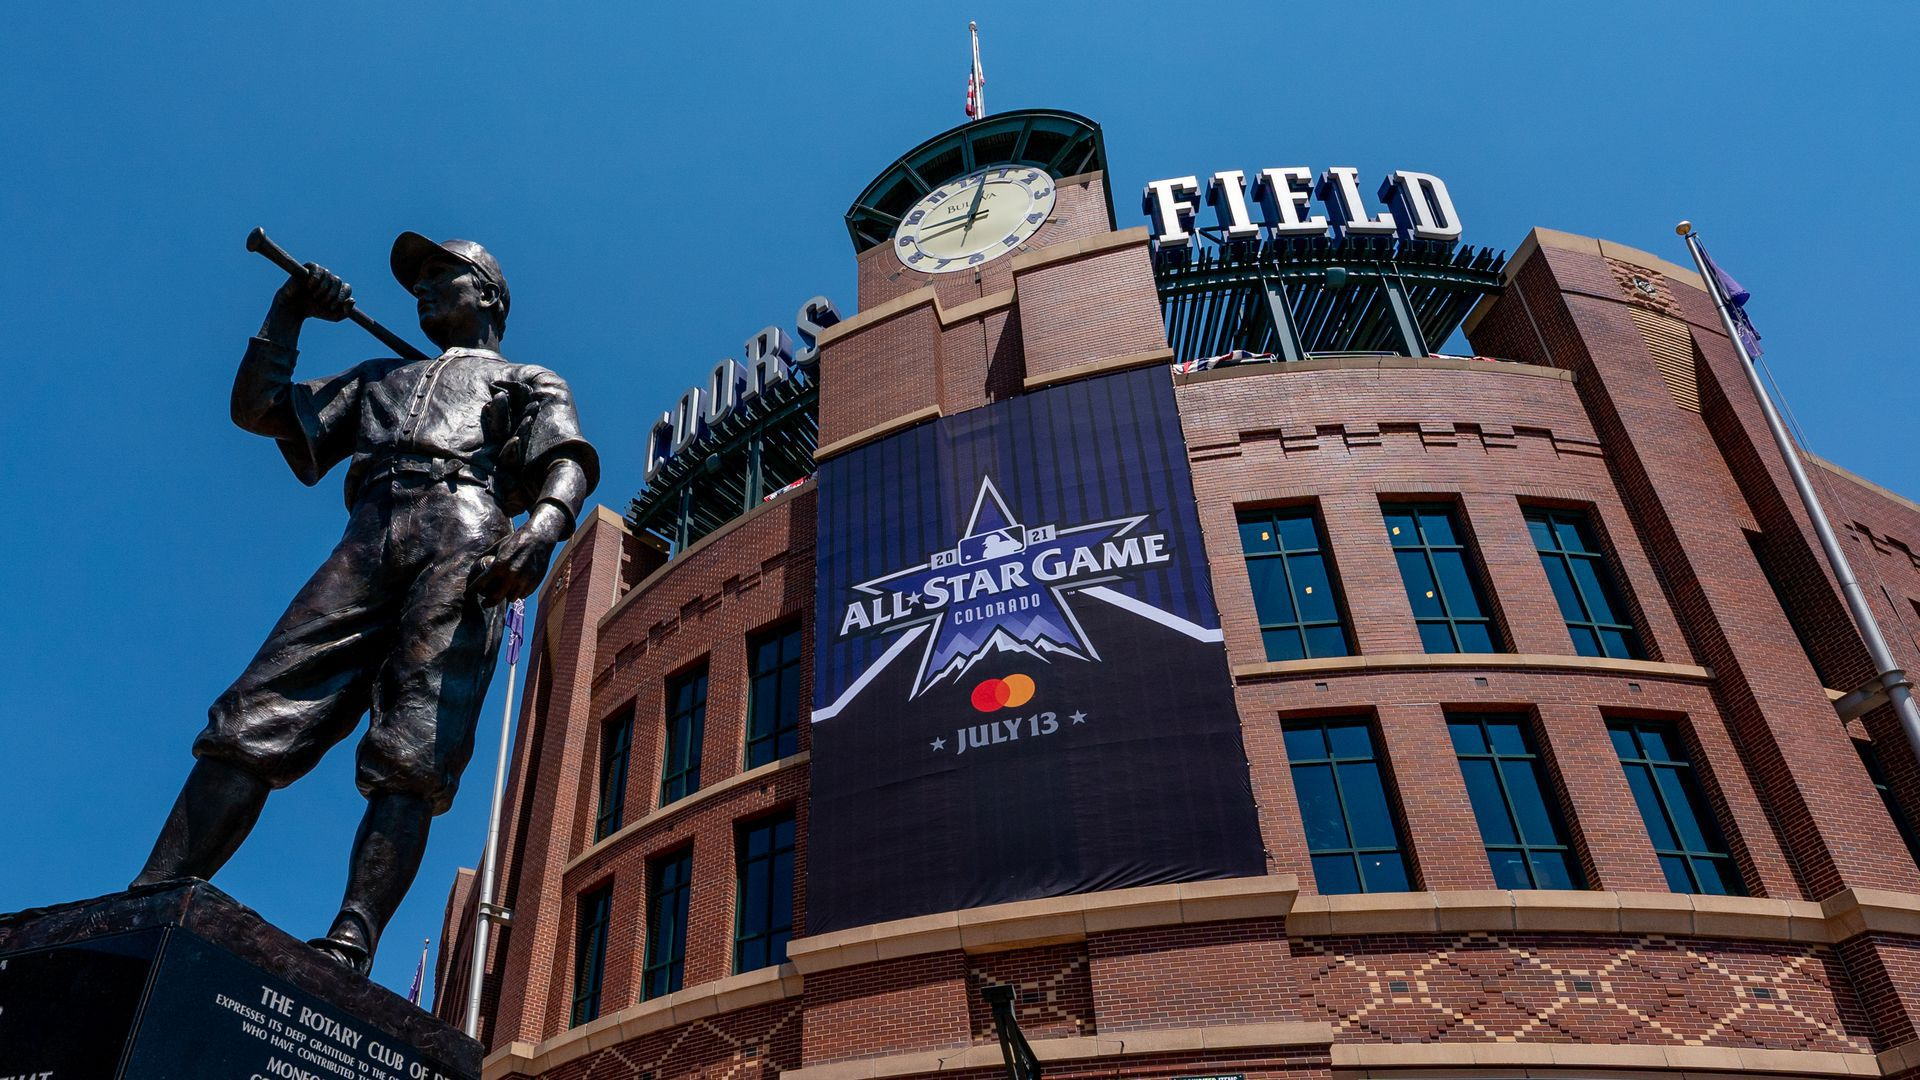 The exterior of Coors Field